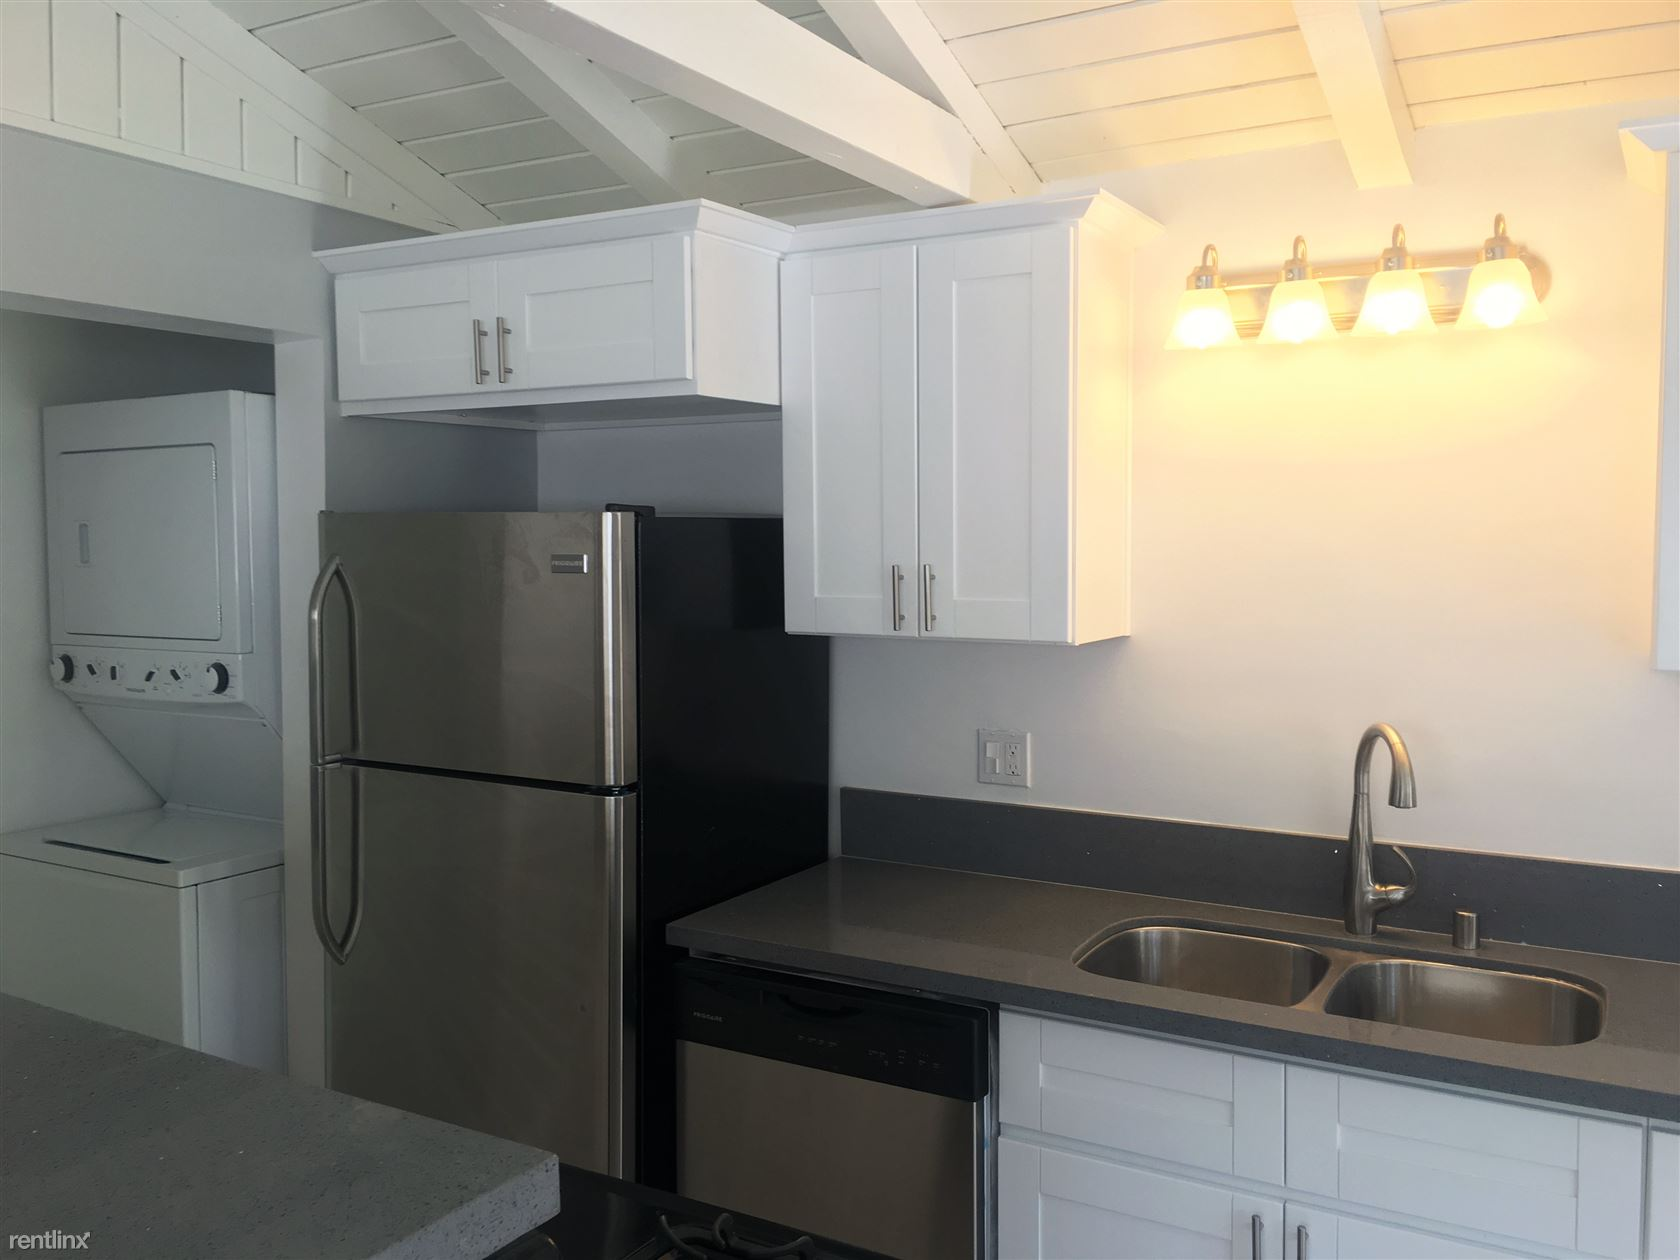 $1700 - $1850 per month , 4559 W 159th St, The Bungalow Apartments